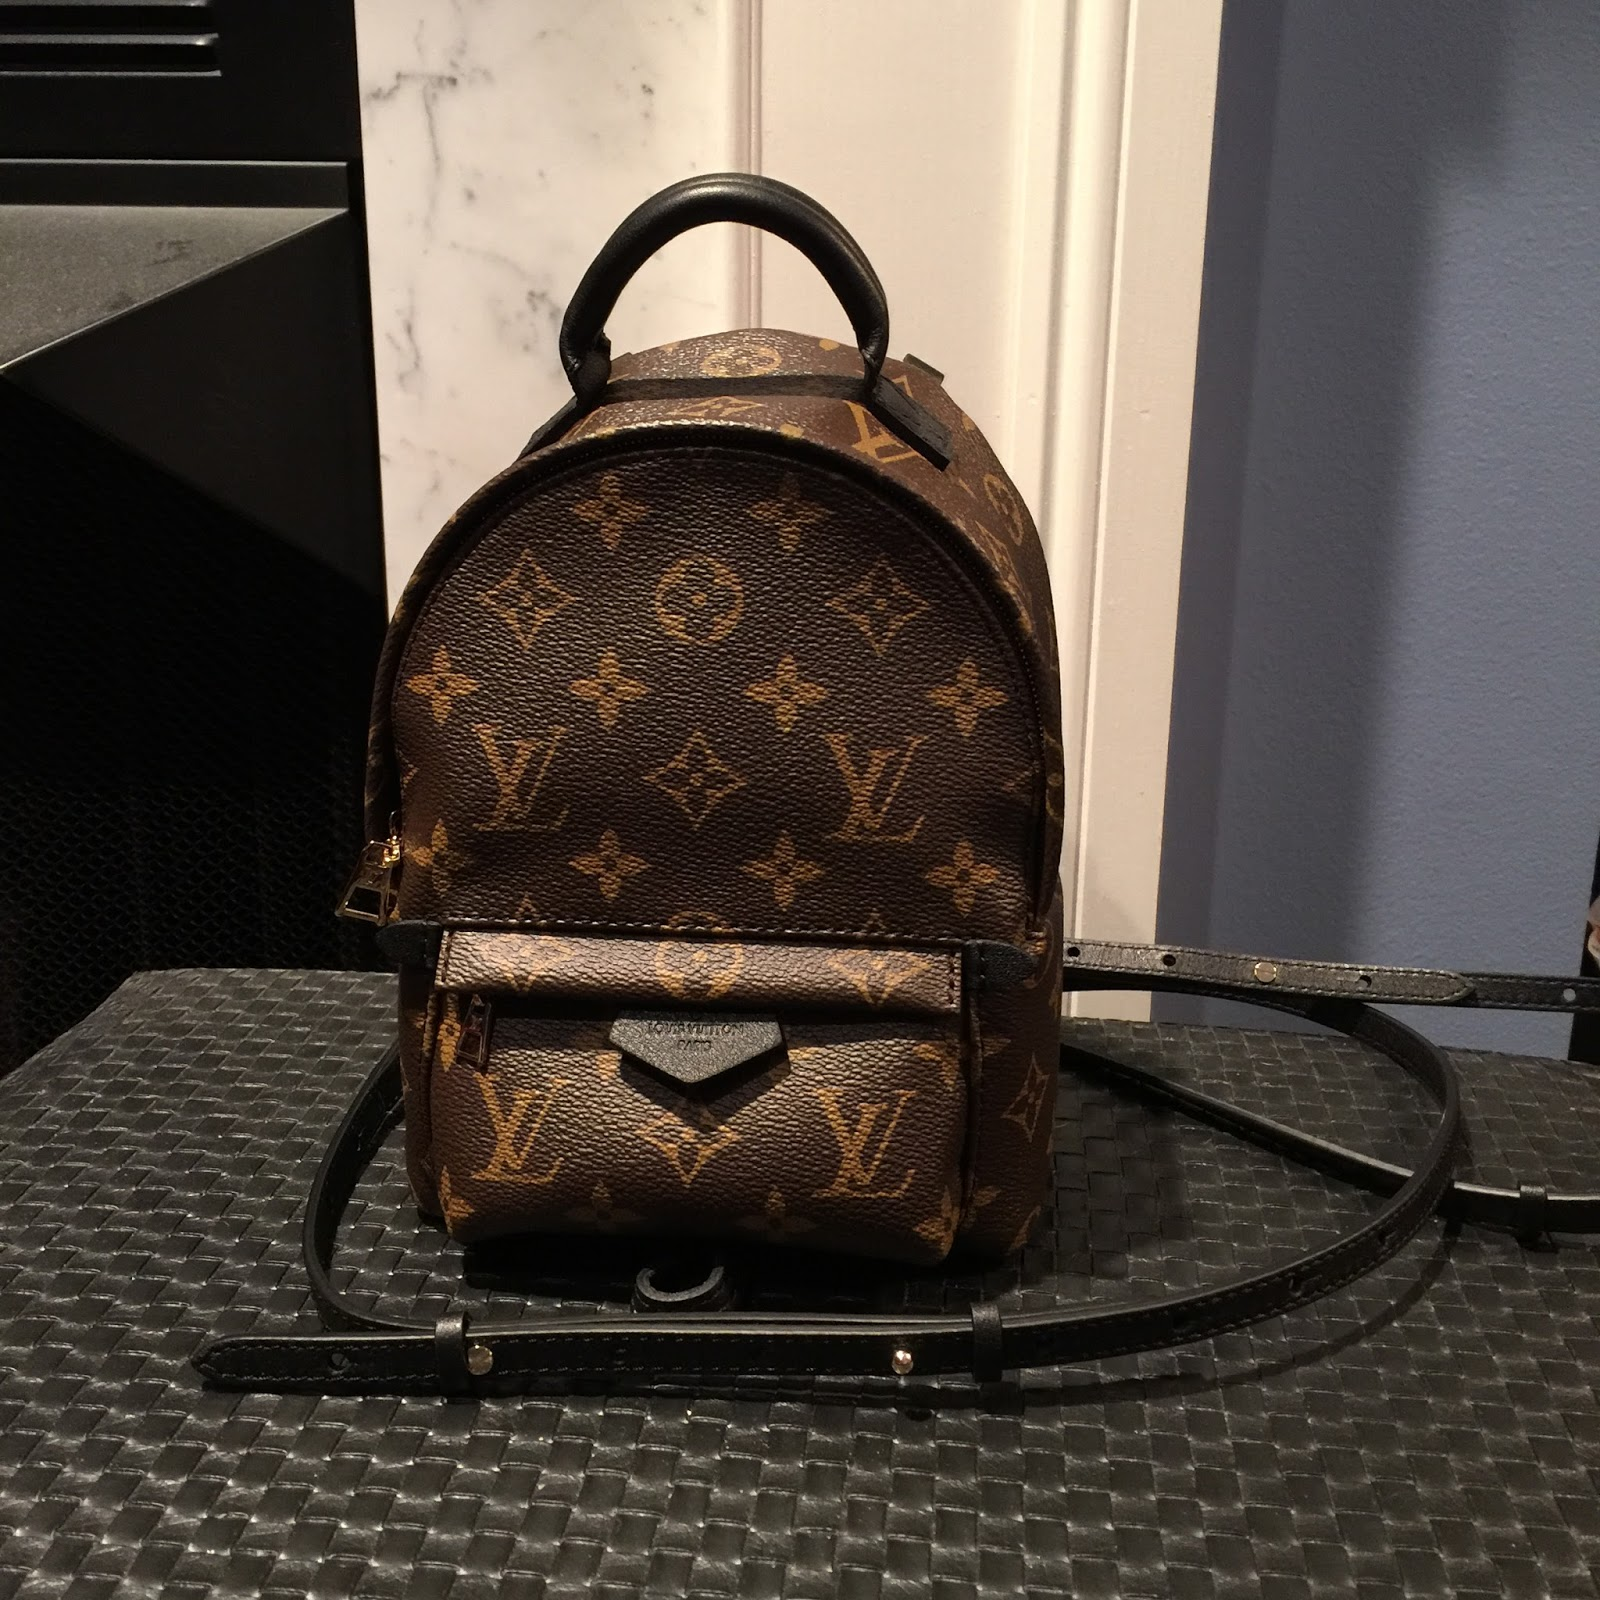 abbcb5a02 LOUIS VUITTON Palm Springs Backpack MINI. I have not stepped in a Louis  Vuitton store in ages but I bolted out of the couch when I saw this online.